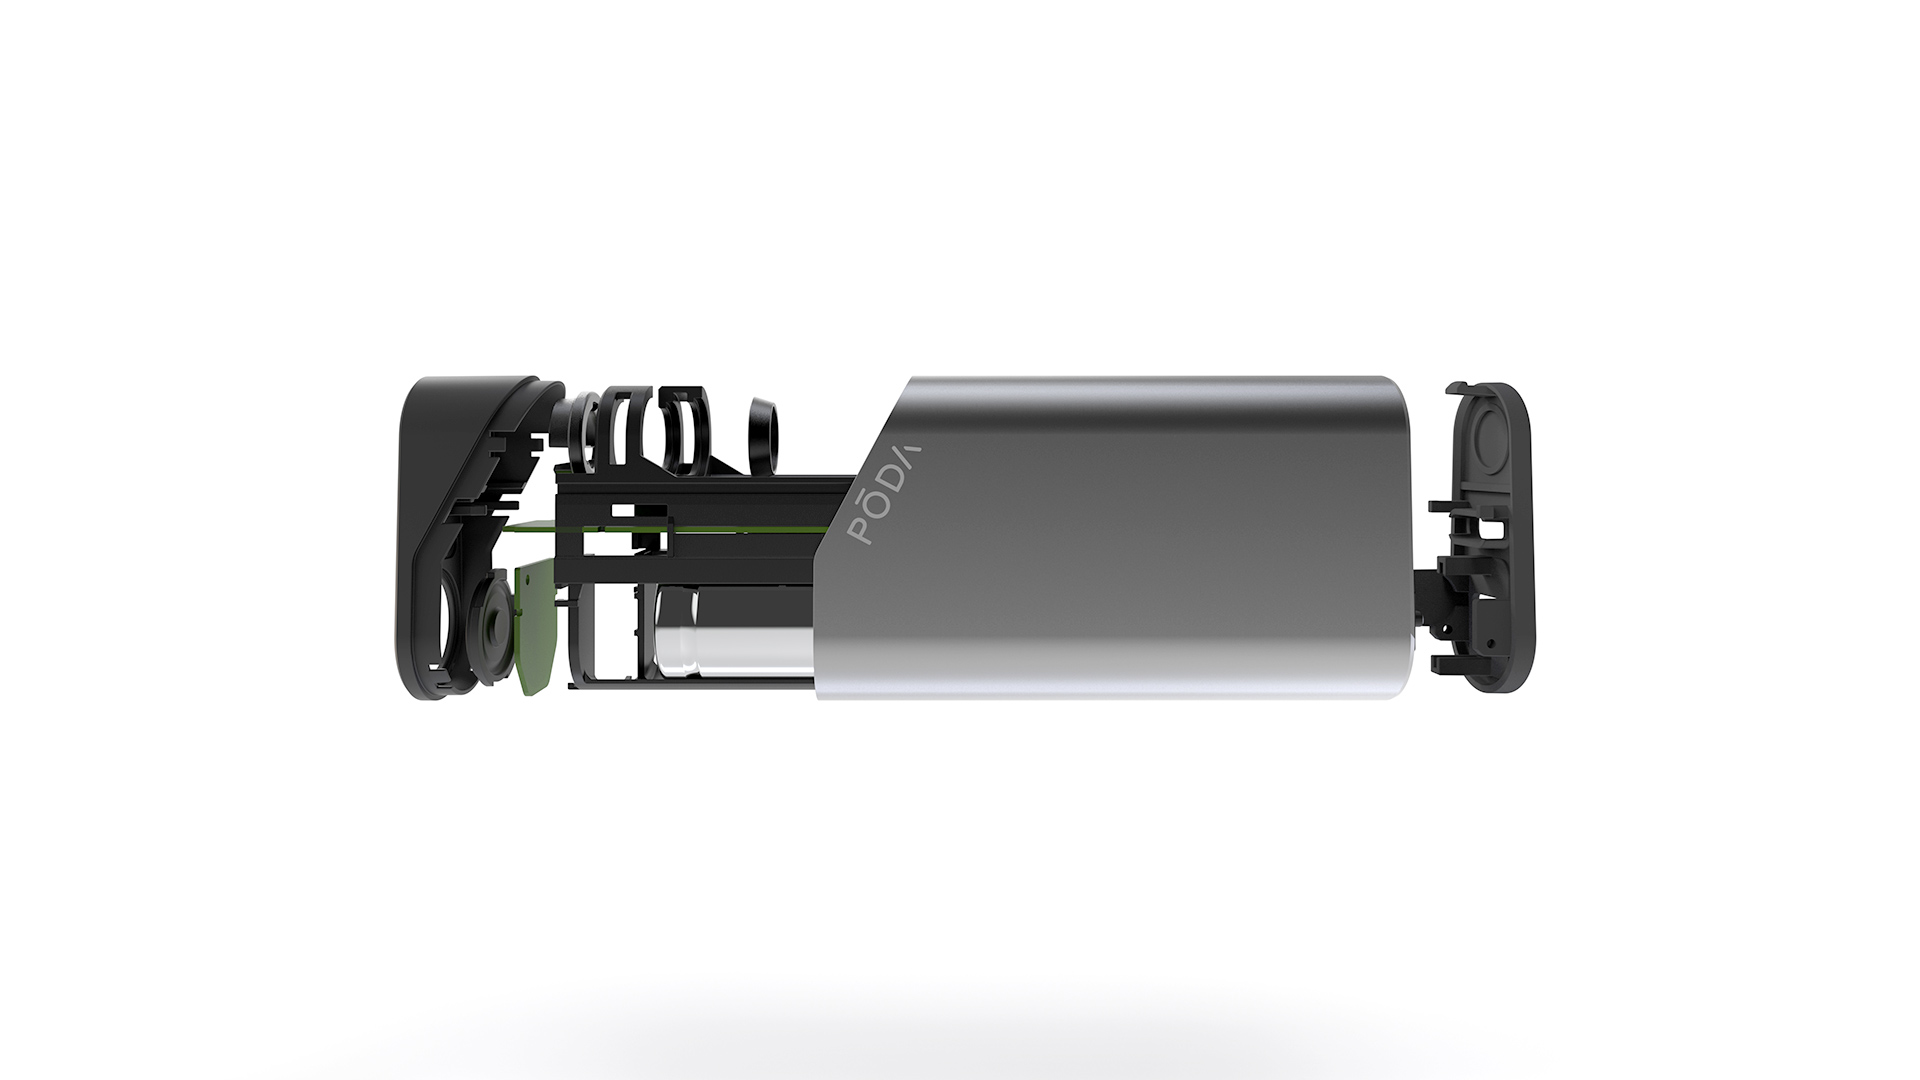 A partially exploded render of the PODA Personal Vaporizer, viewed from the side.